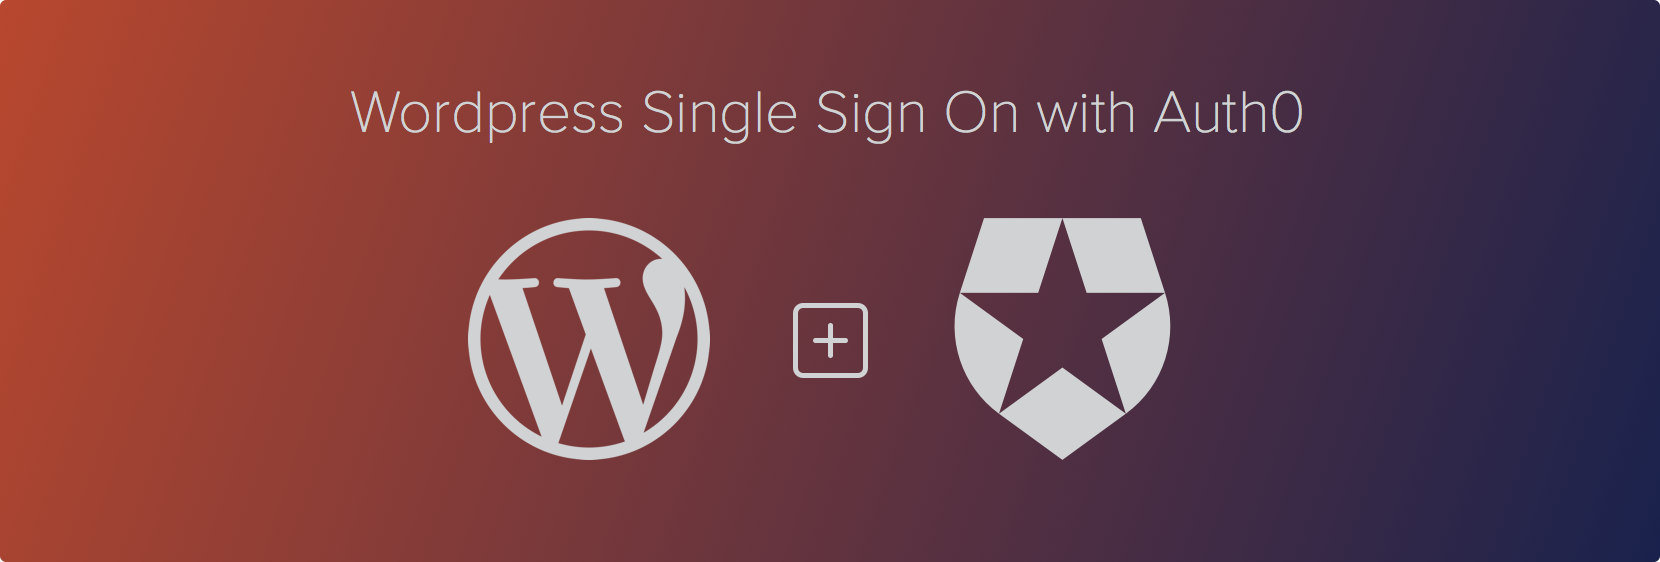 WordPress and auth0